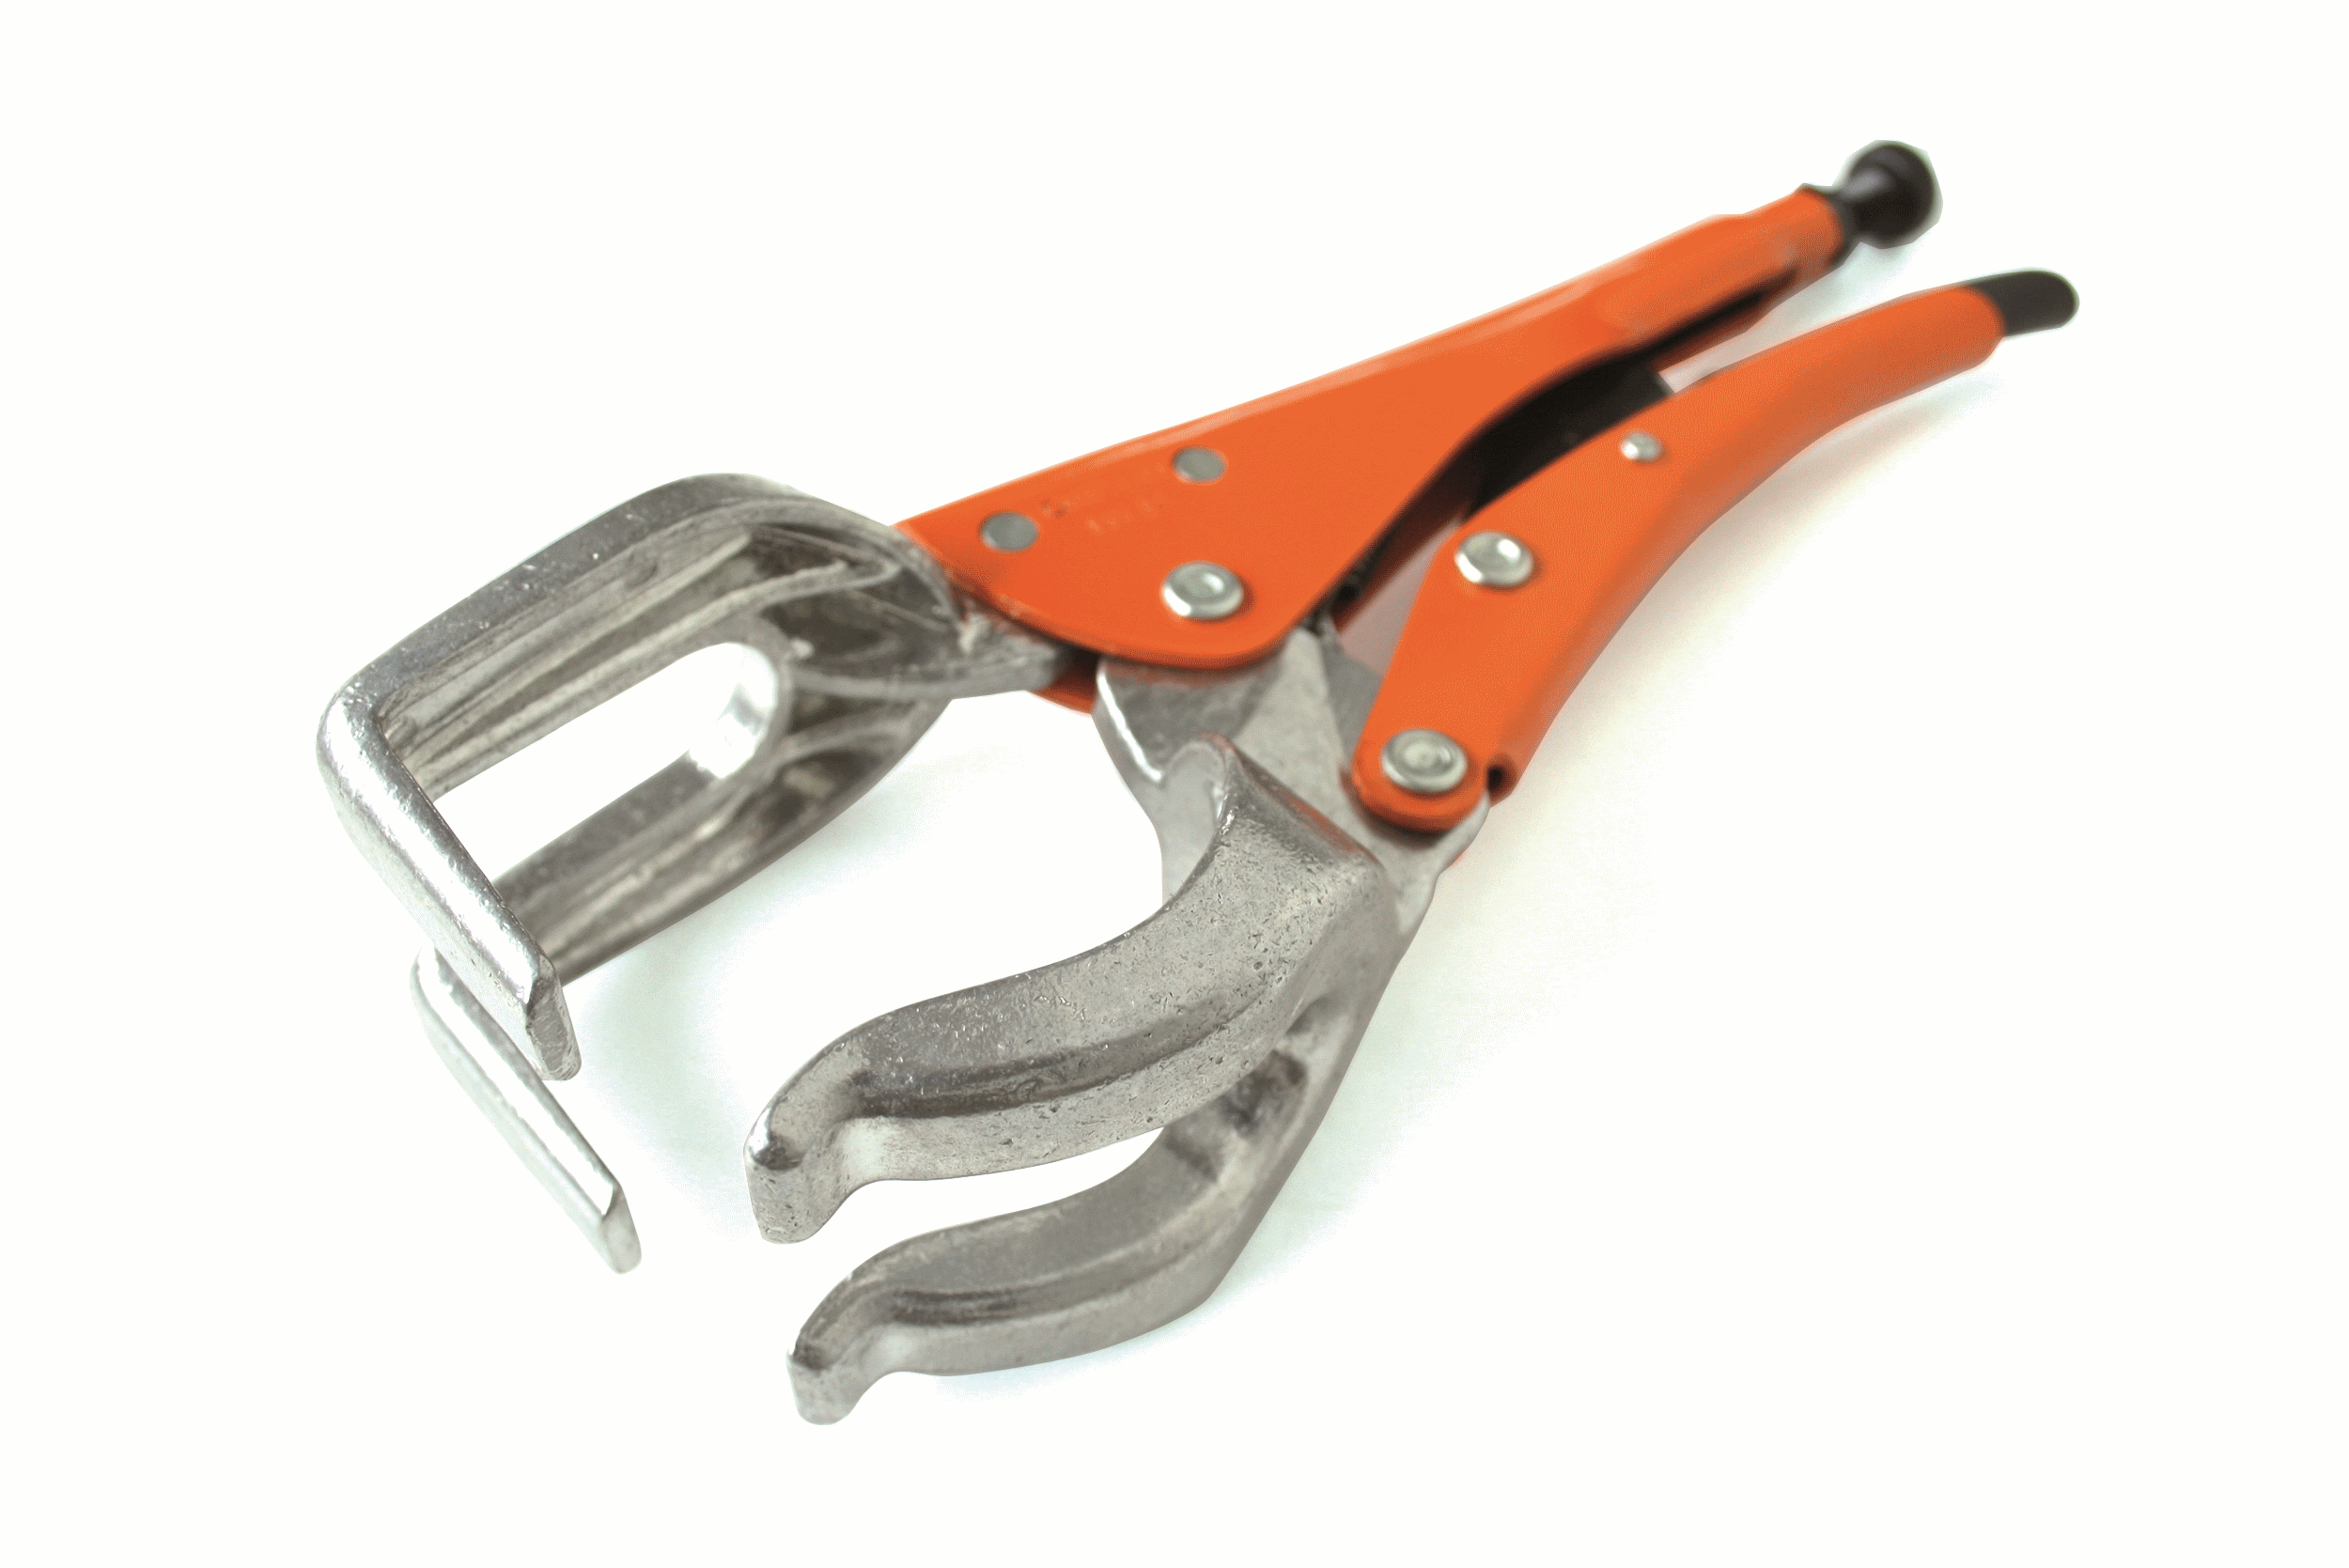 GRIP-ON Locking Aluminium C-Clamps